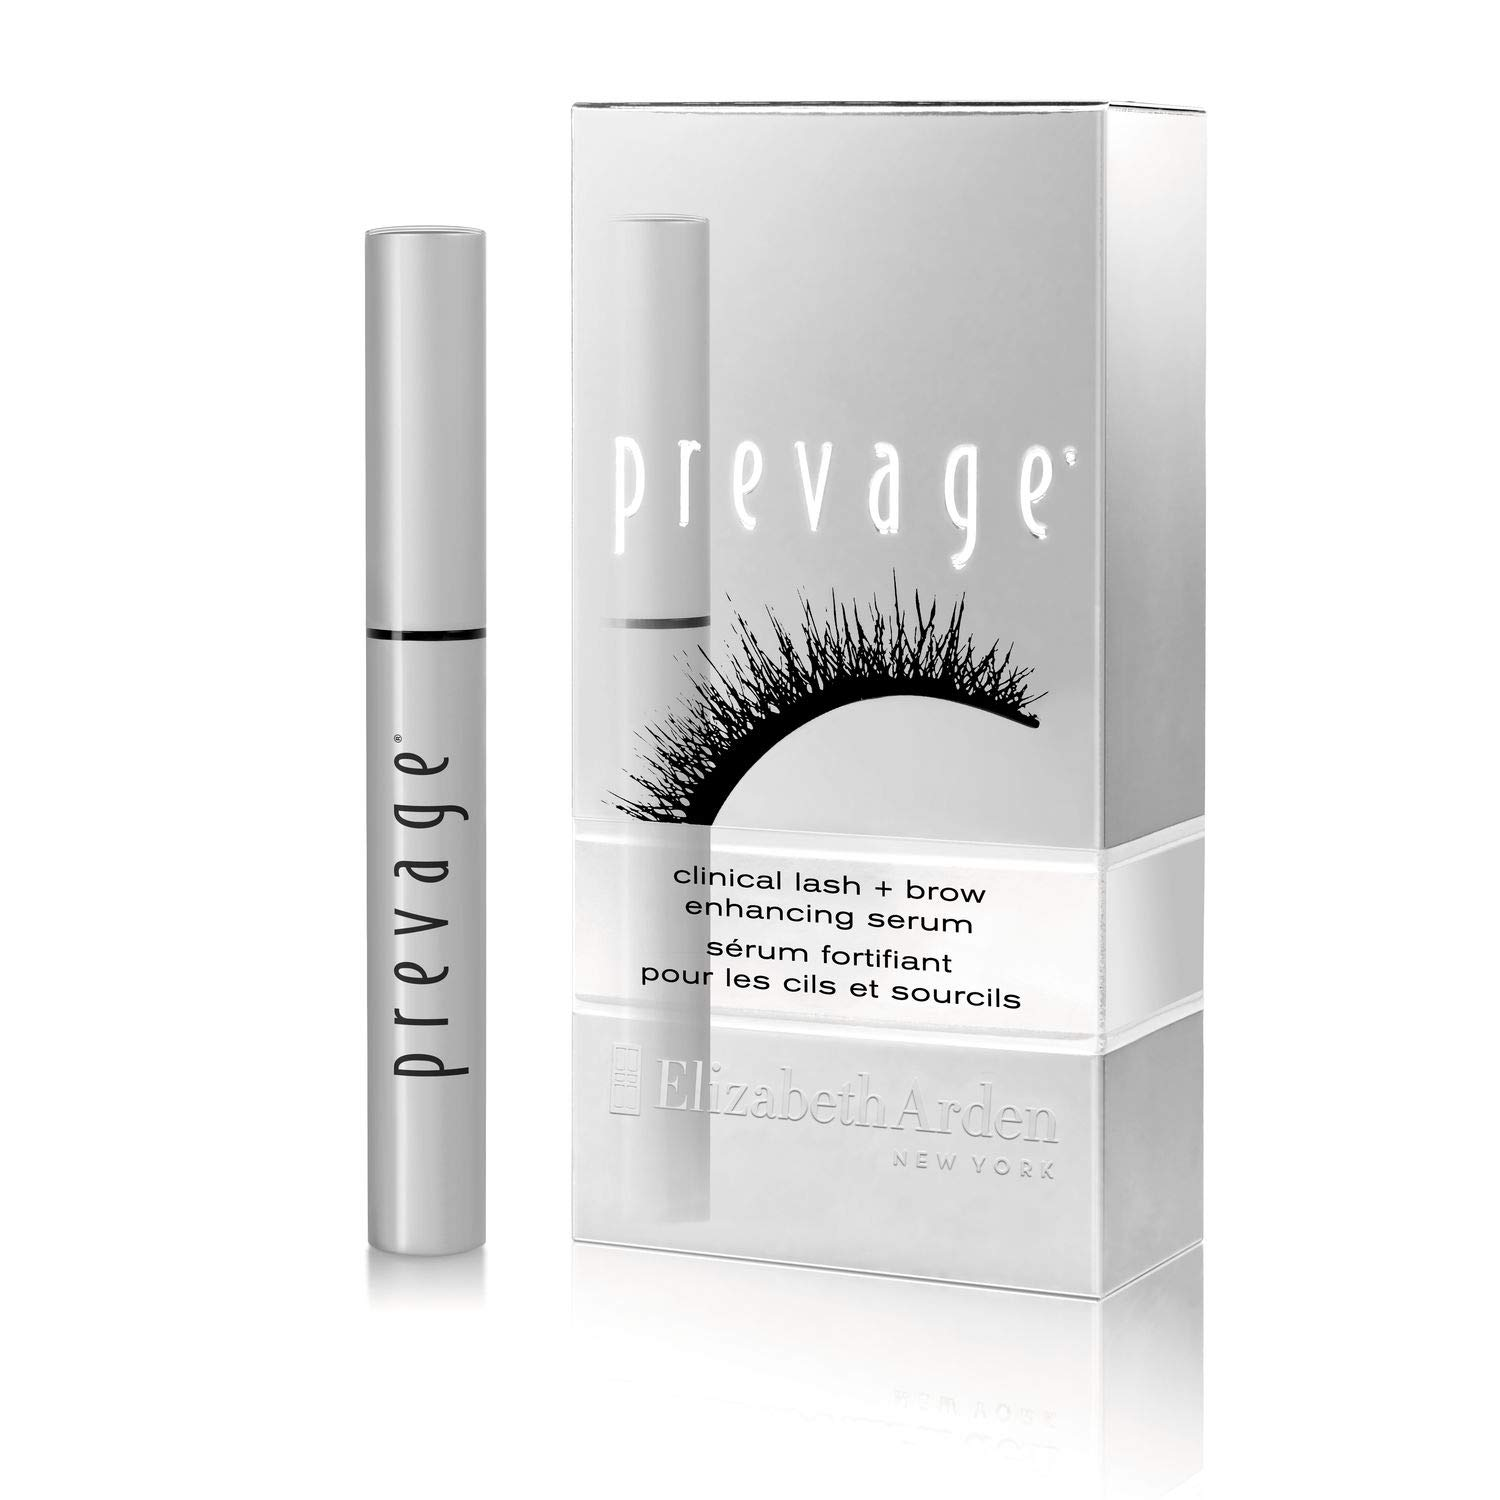 Elizabeth Arden Prevage Clinical Lash Plus Brow Enhancing Serum, 0.13 fl. oz. by Elizabeth Arden (Image #1)